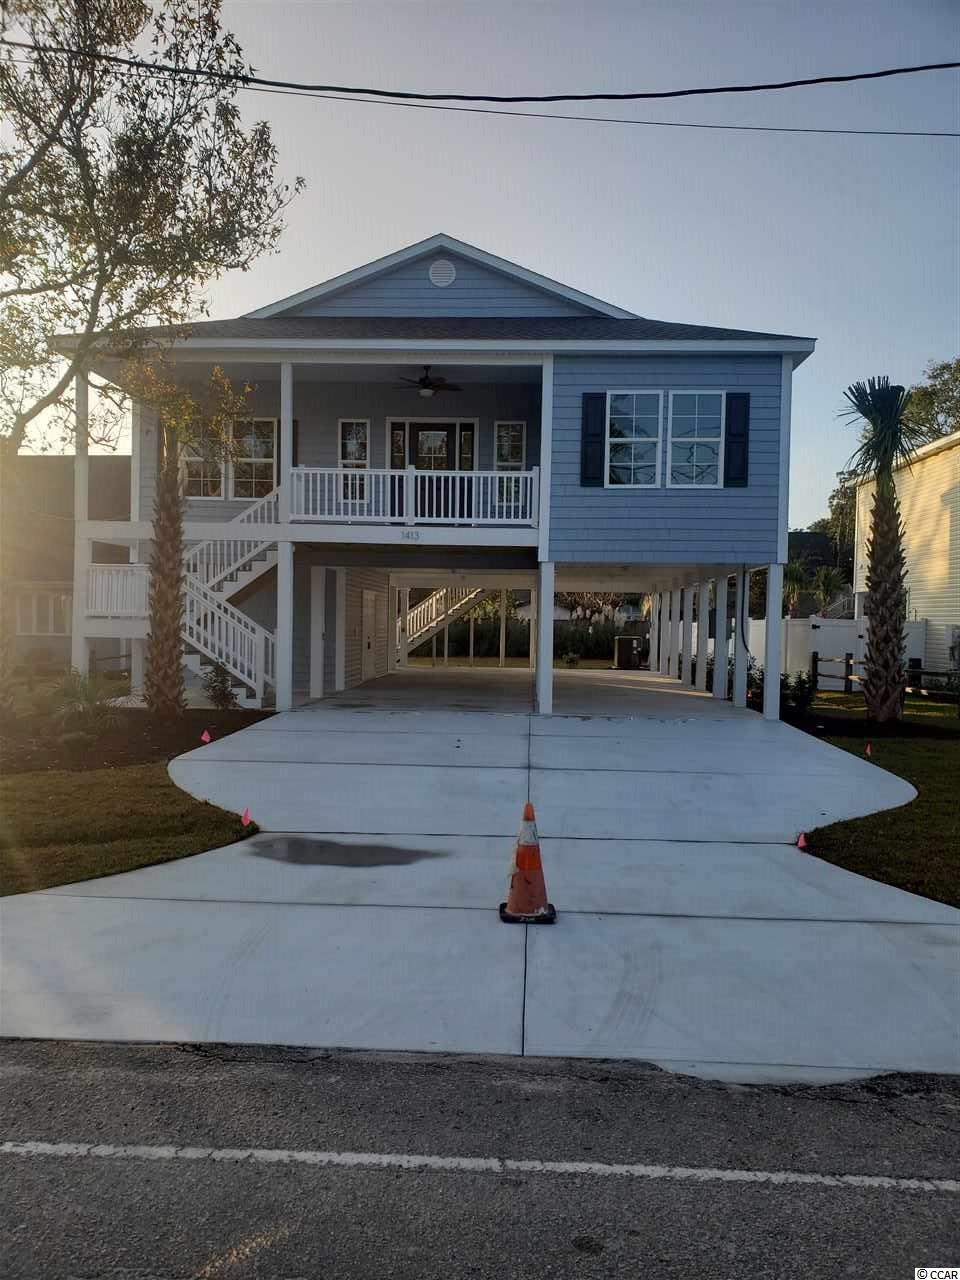 4BR / 3BA raised beach home under construction 3 blocks off the ocean in NMB - Home to feature 9 and 10' ceilings, crown molding throughout, custom cabinets with granite countertops and stainless appliance package.